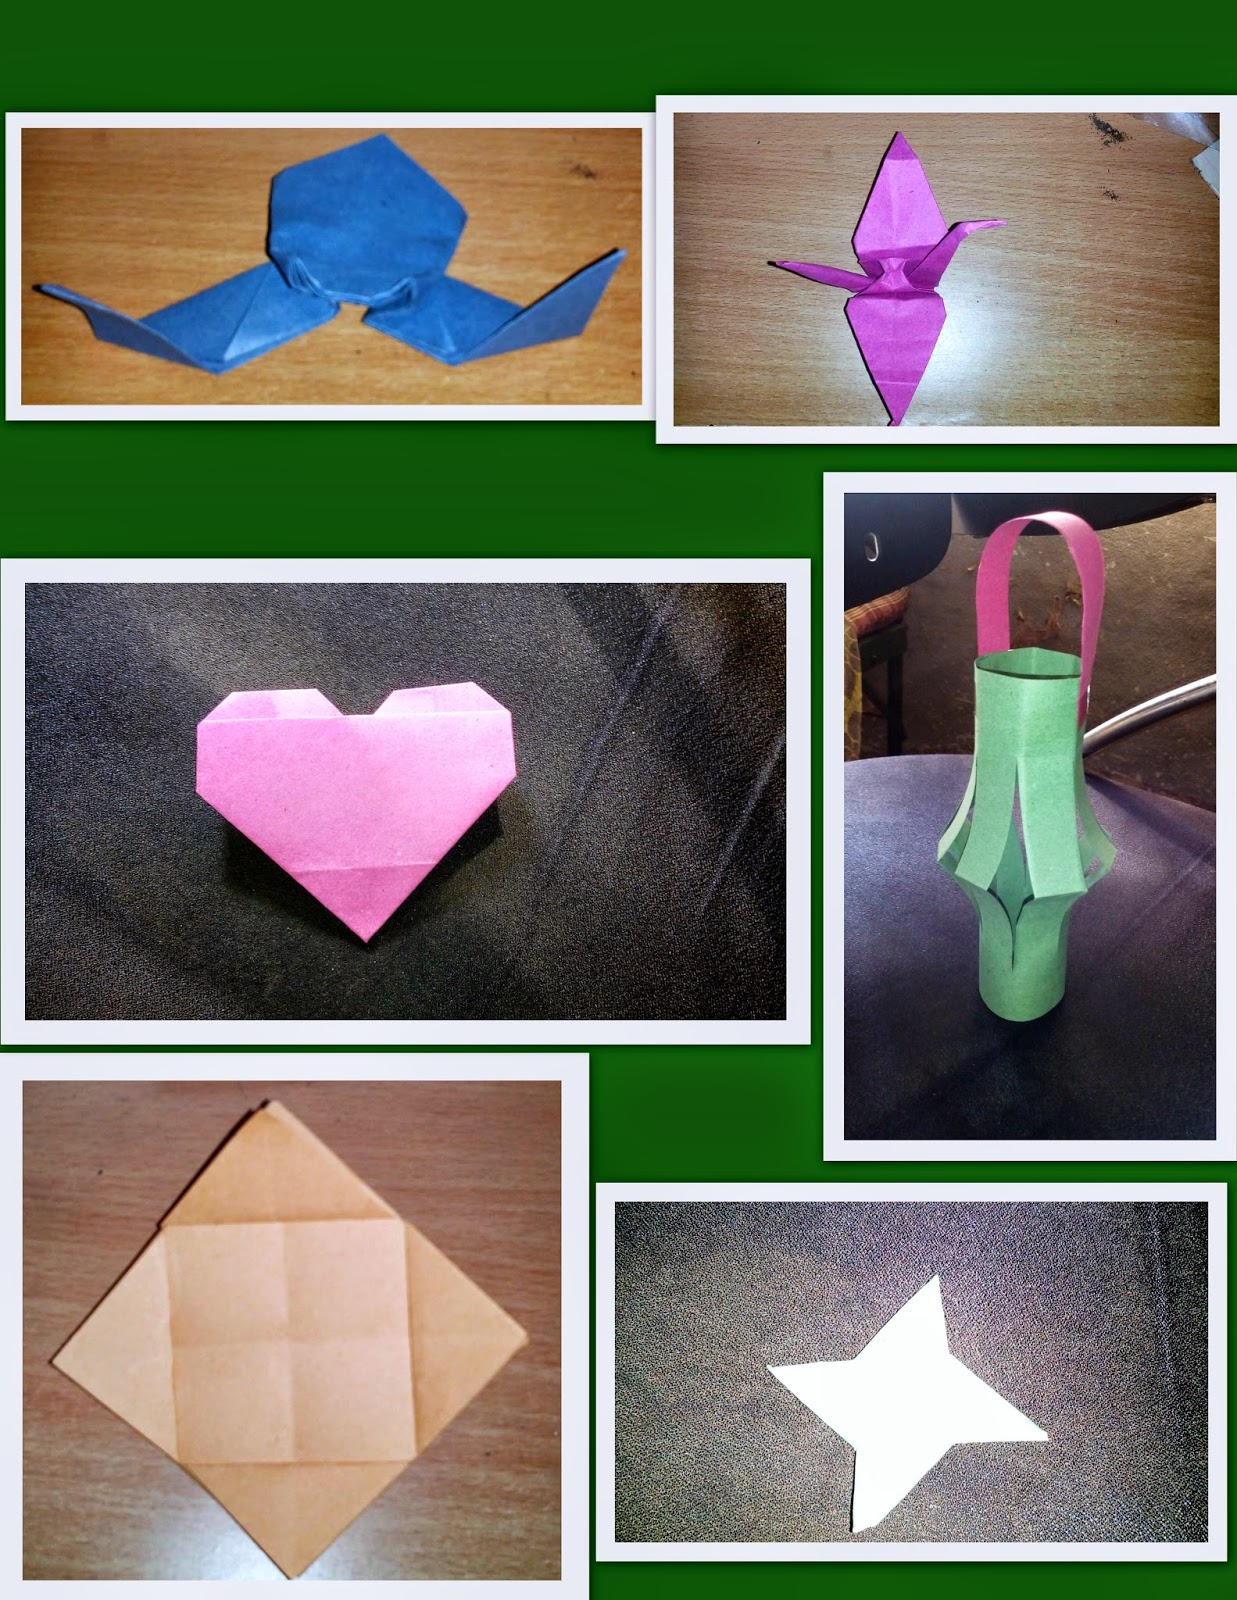 Image: Origami Creations